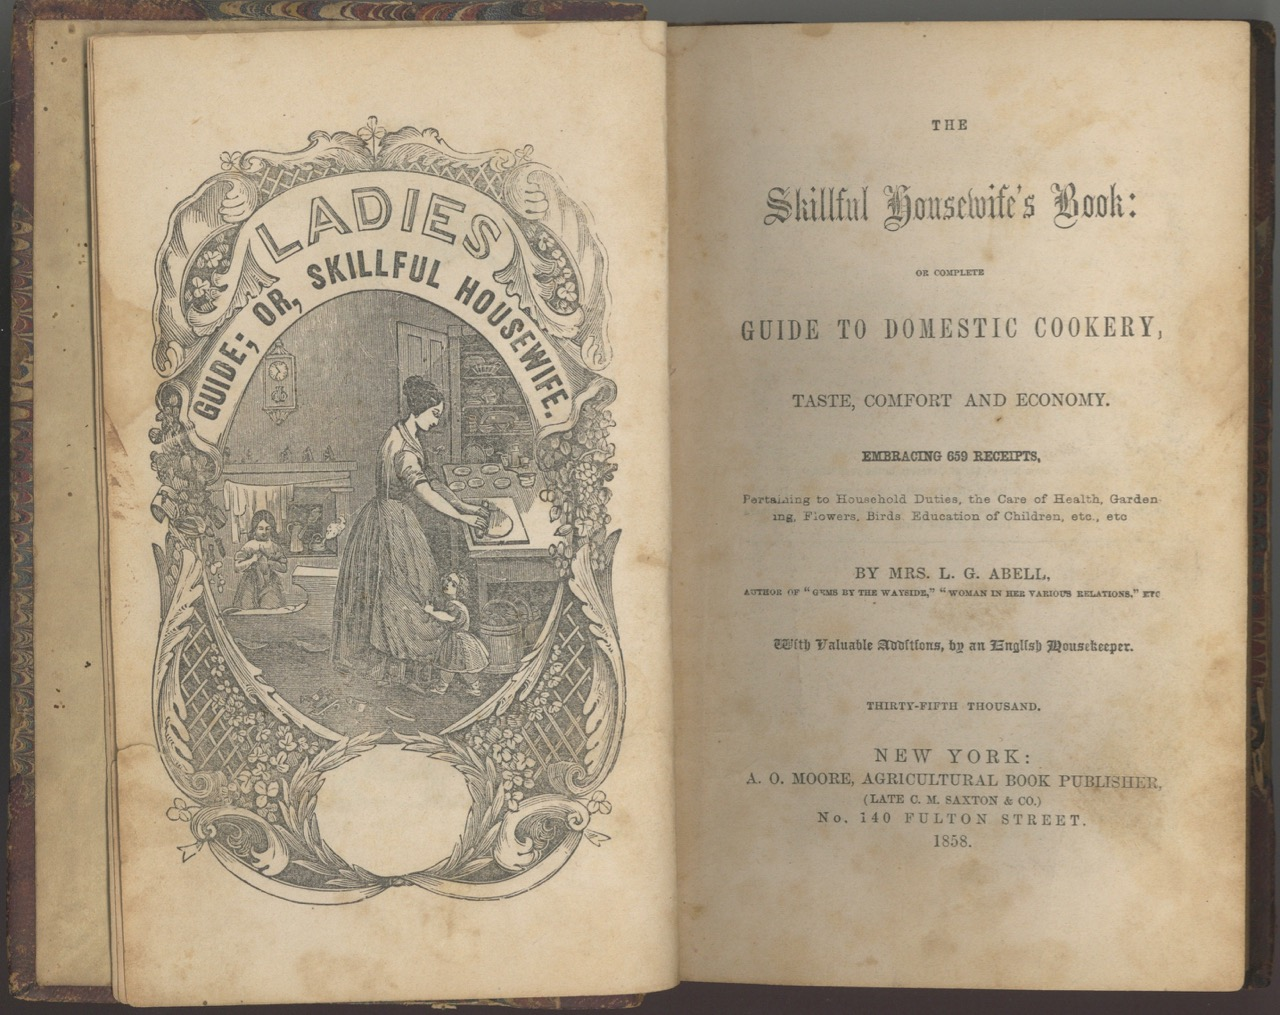 The Skillful Housewife's Book: Or Complete Guide to Domestic Cookery, Taste, Comfort, and Economy. Embracing 659 Receipts pertaining to Household Duties, the Care of Health, Gardening, Flowers, Birds, Education of Children, etc., etc. Thirty-Fifth Thousand. L. G. Mrs Abell.